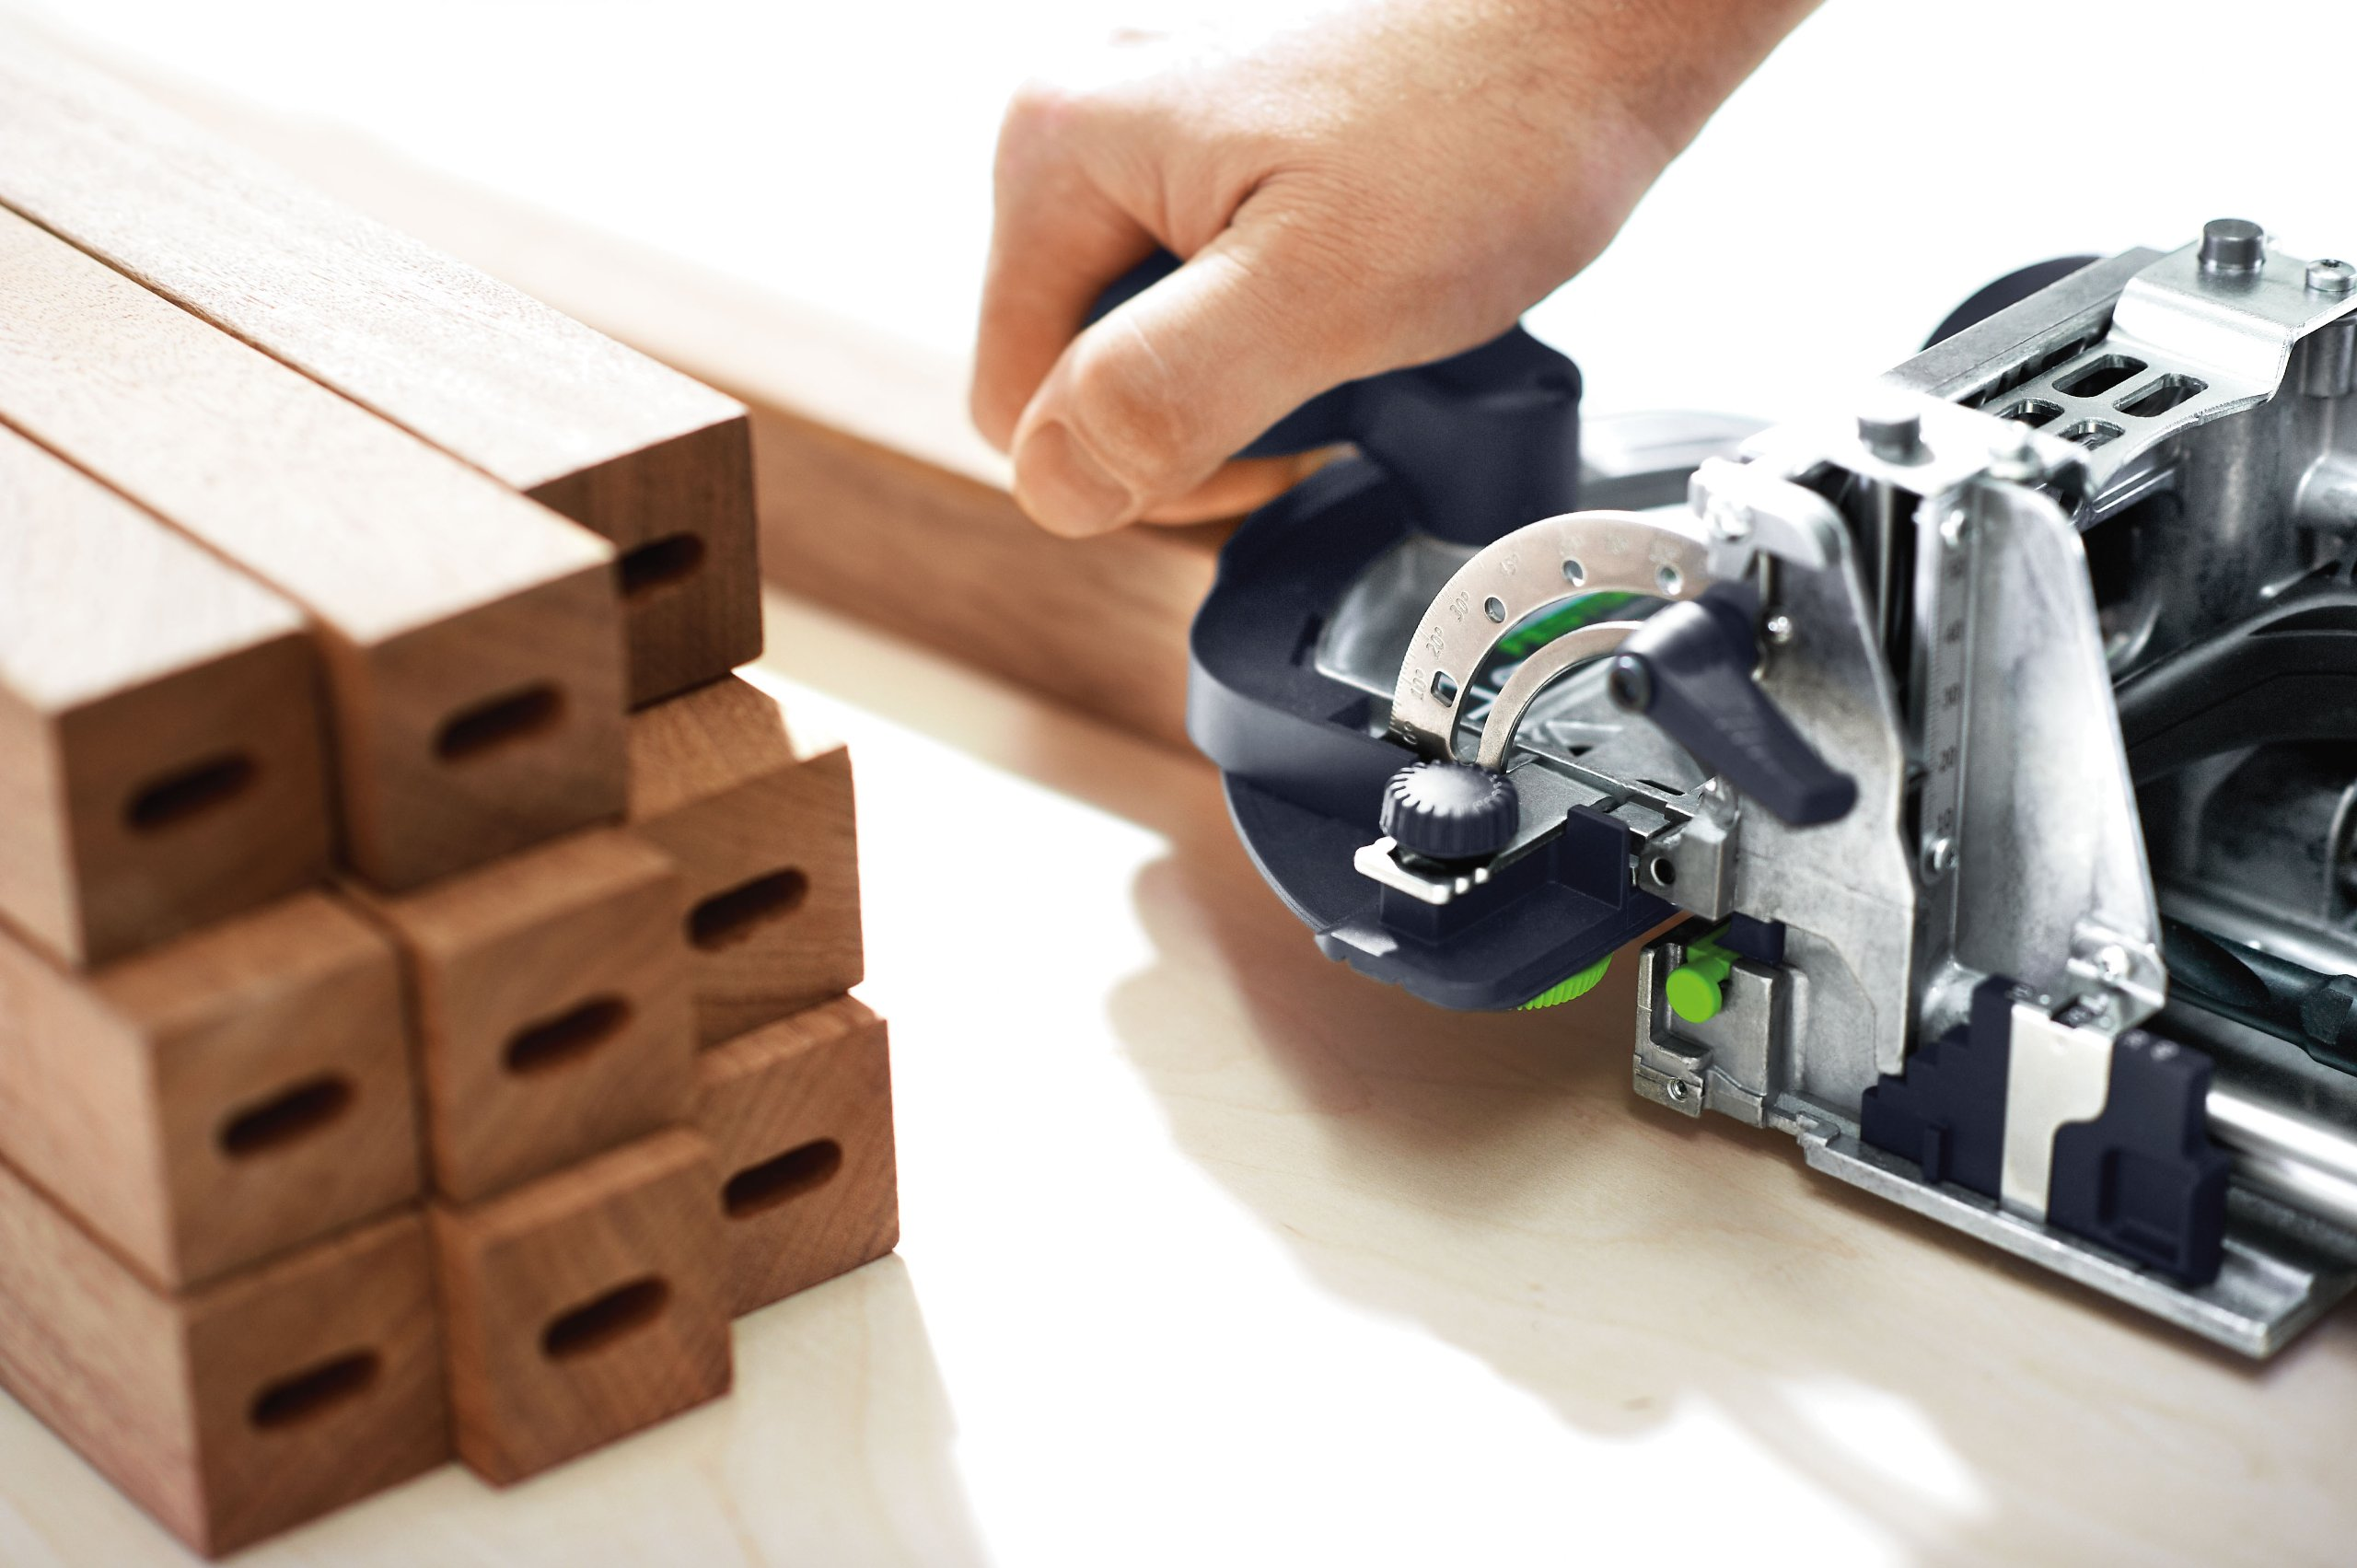 Festool 574447 XL DF 700 Domino Joiner Set by Festool (Image #3)